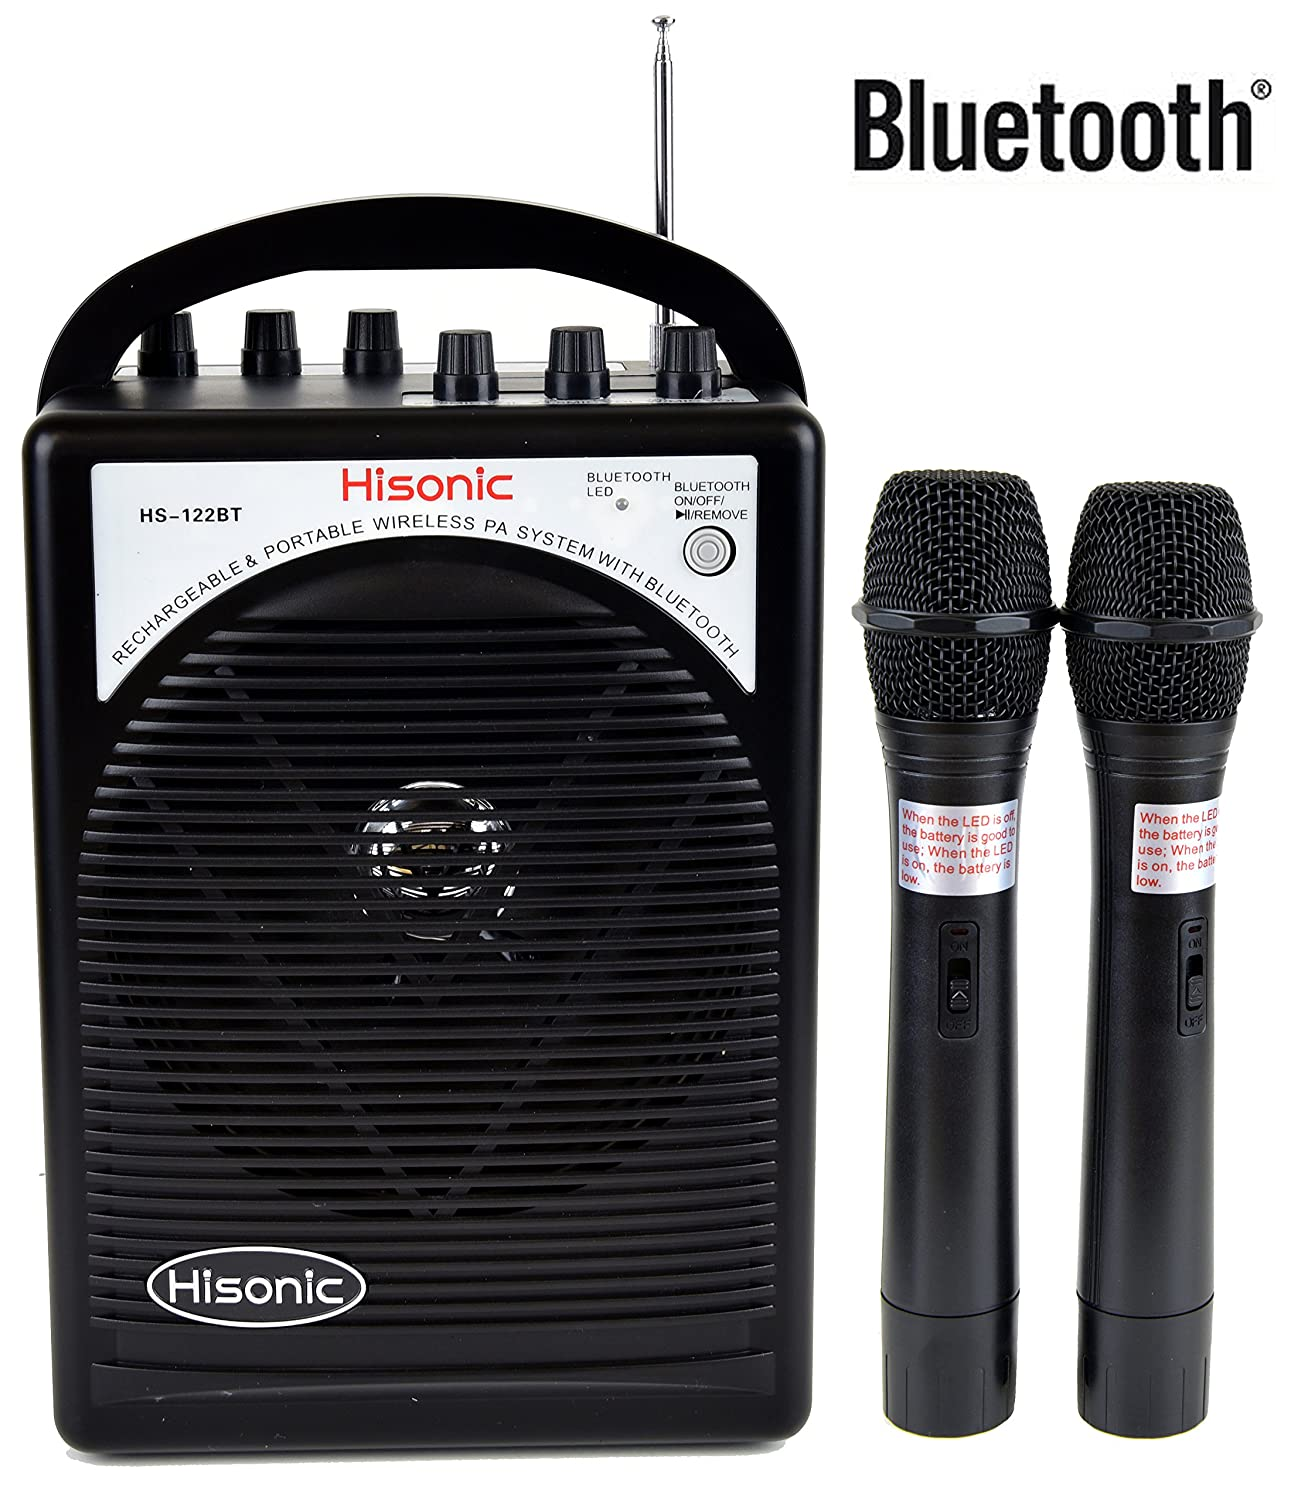 HISONIC HS122BT-HH Portable PA System with Dual Channel Wireless Microphones (Two handheland), Lithium Rechargeable Battery, Bluetooth Streaming Music From your Cell Phones,iPads, Android Pads and Computer, with Car Cable and Carry Bag, Black HS120BT-HH